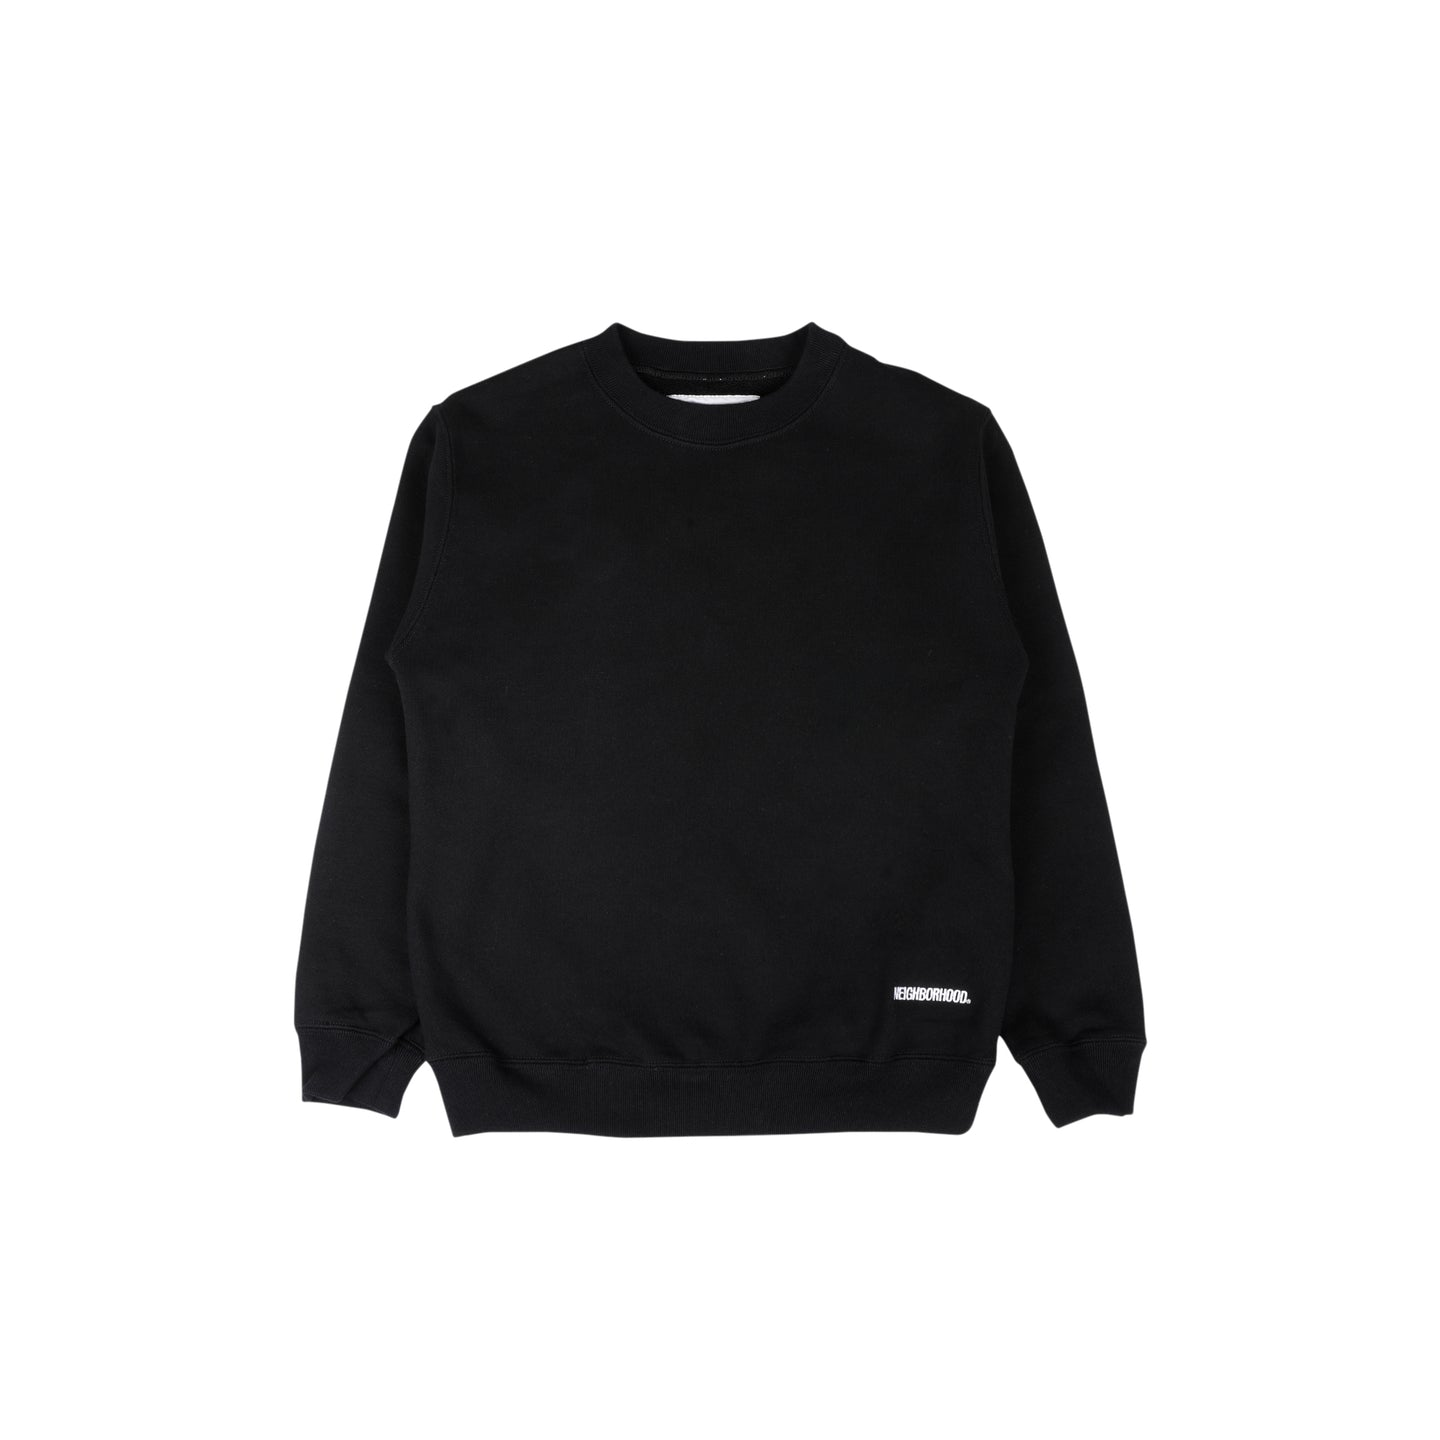 Neighborhood One Third Classic-S Sweatshirt Black